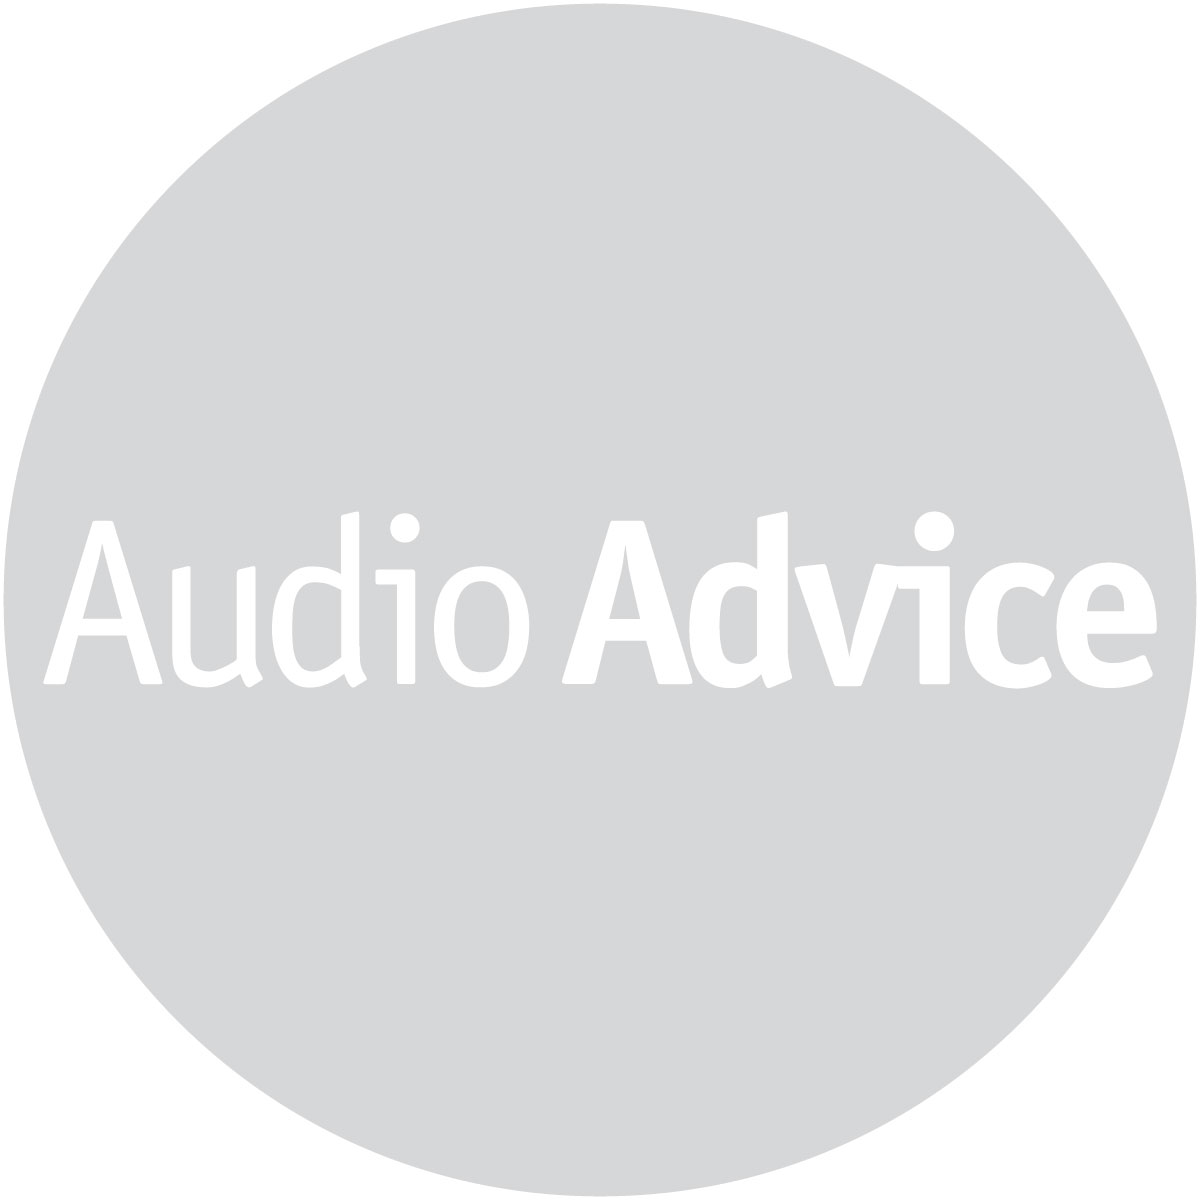 https://www.audioadvice.com/pub/media/catalog/product/s/d/sdav7224.wengee.jpg